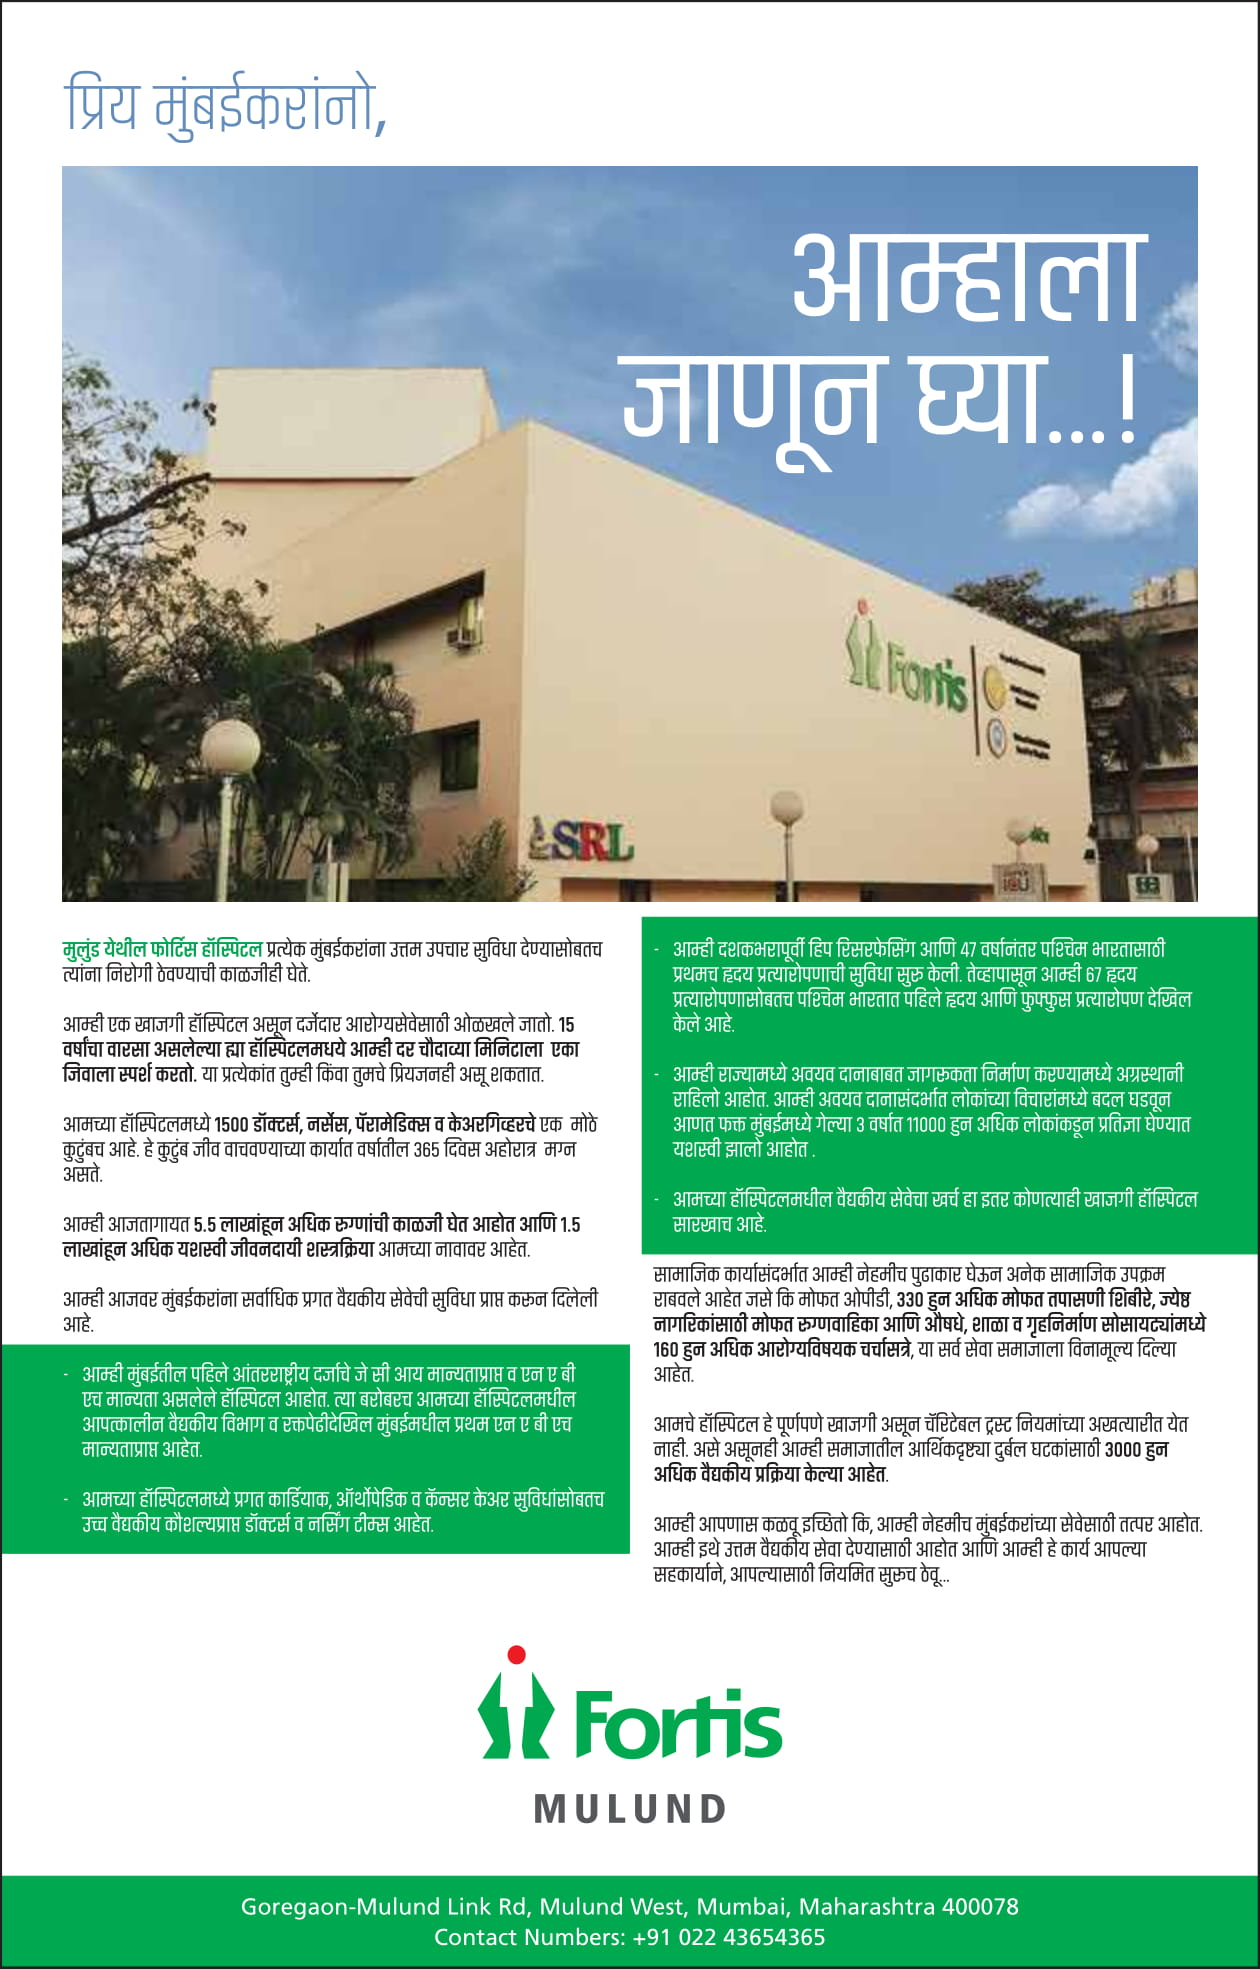 News - Know Us Better Fortis Mulund